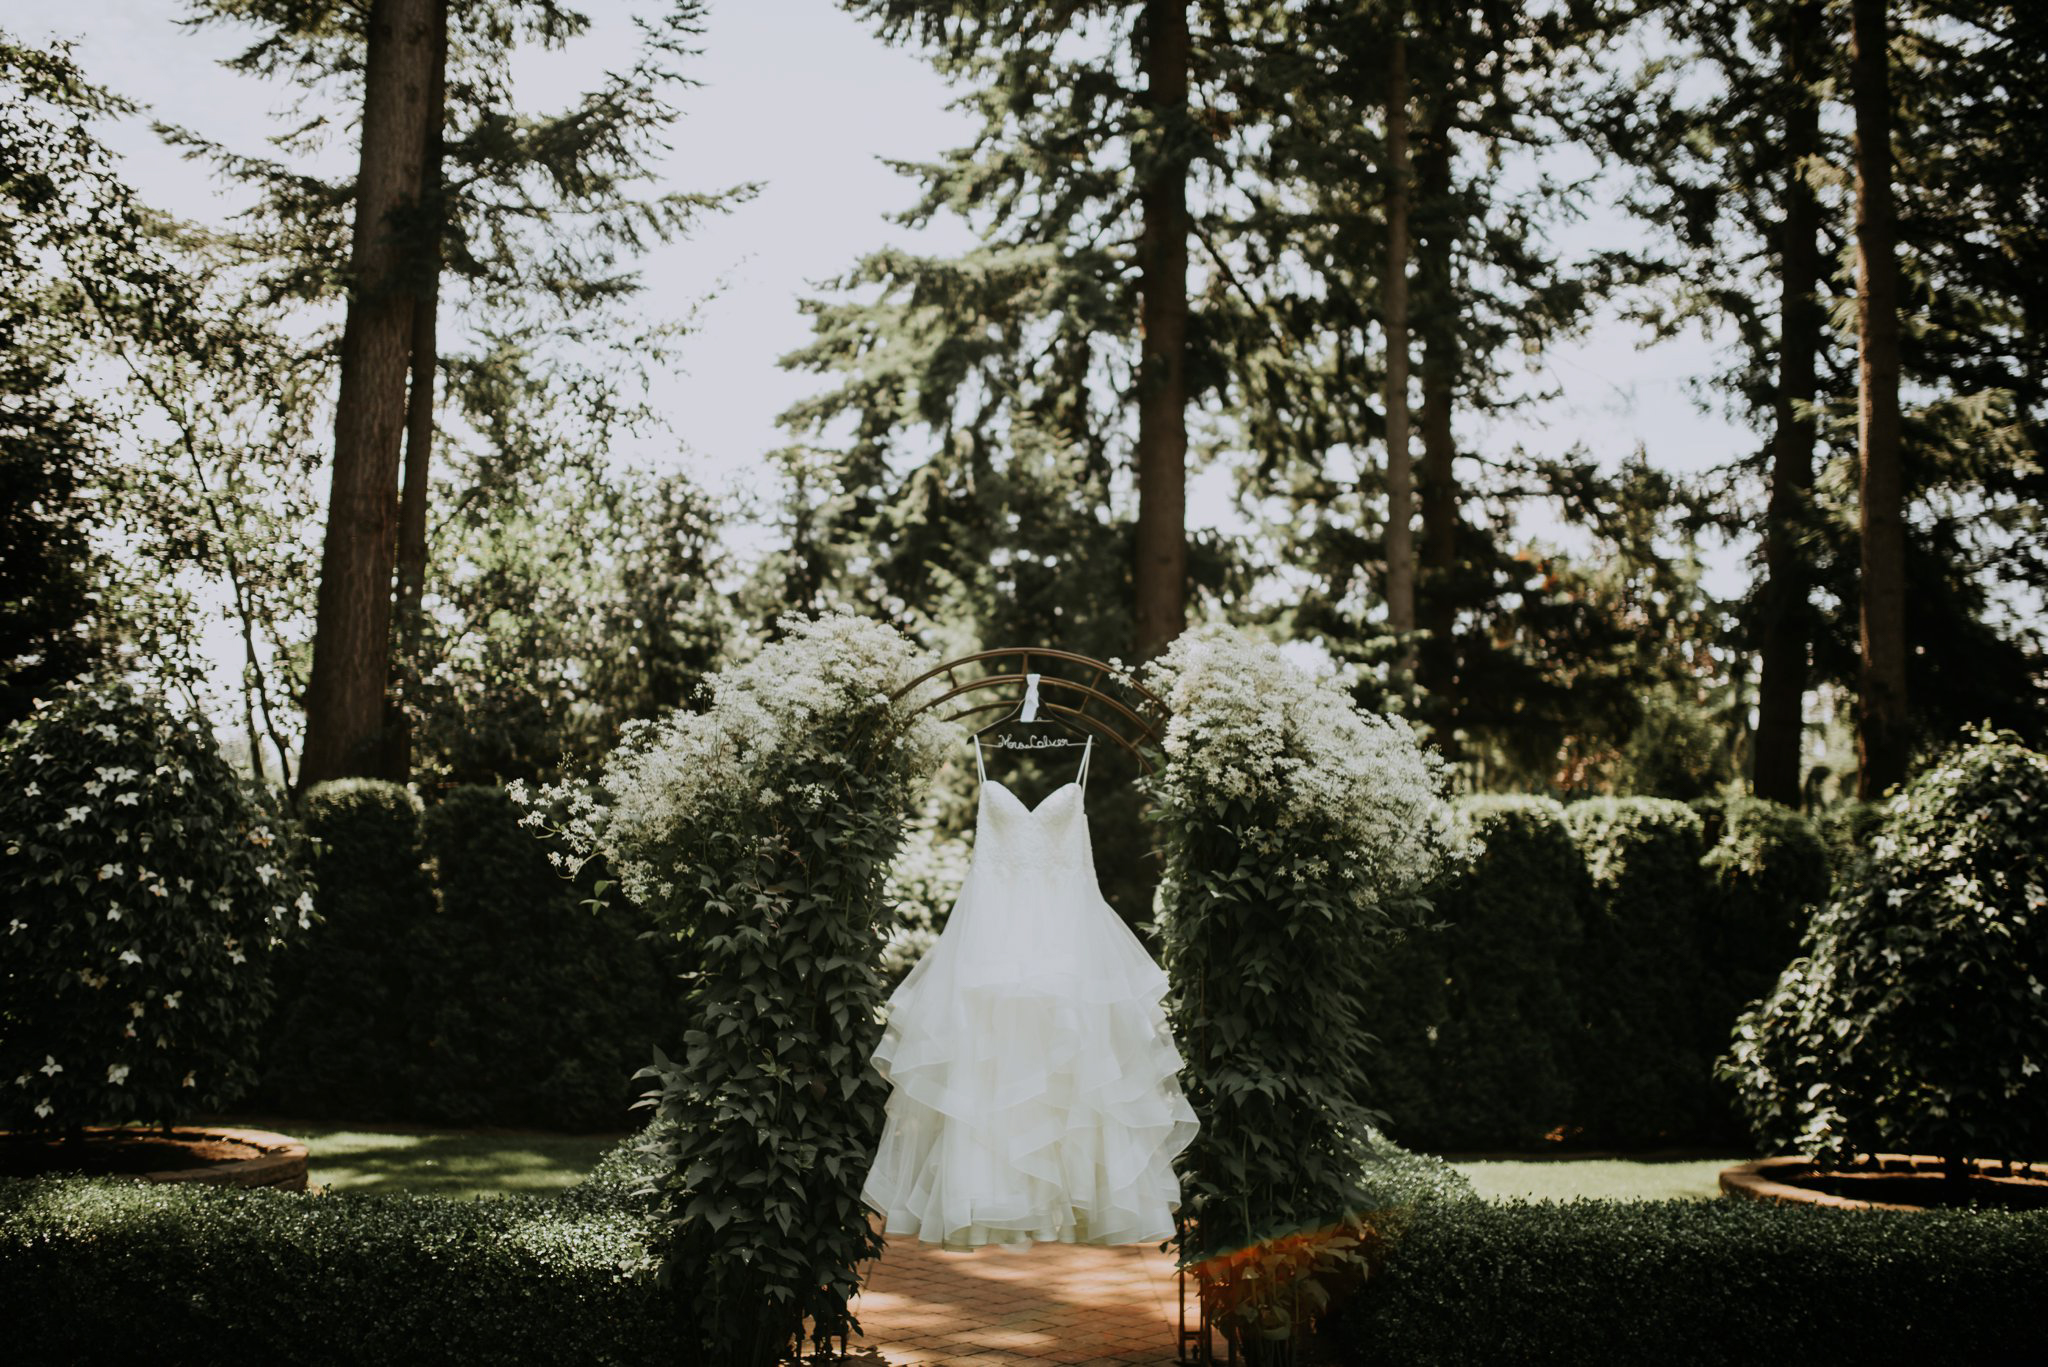 evergreen-gardens-bellingham-wedding-seattle-photographer-caitlyn-nikula-5.jpg